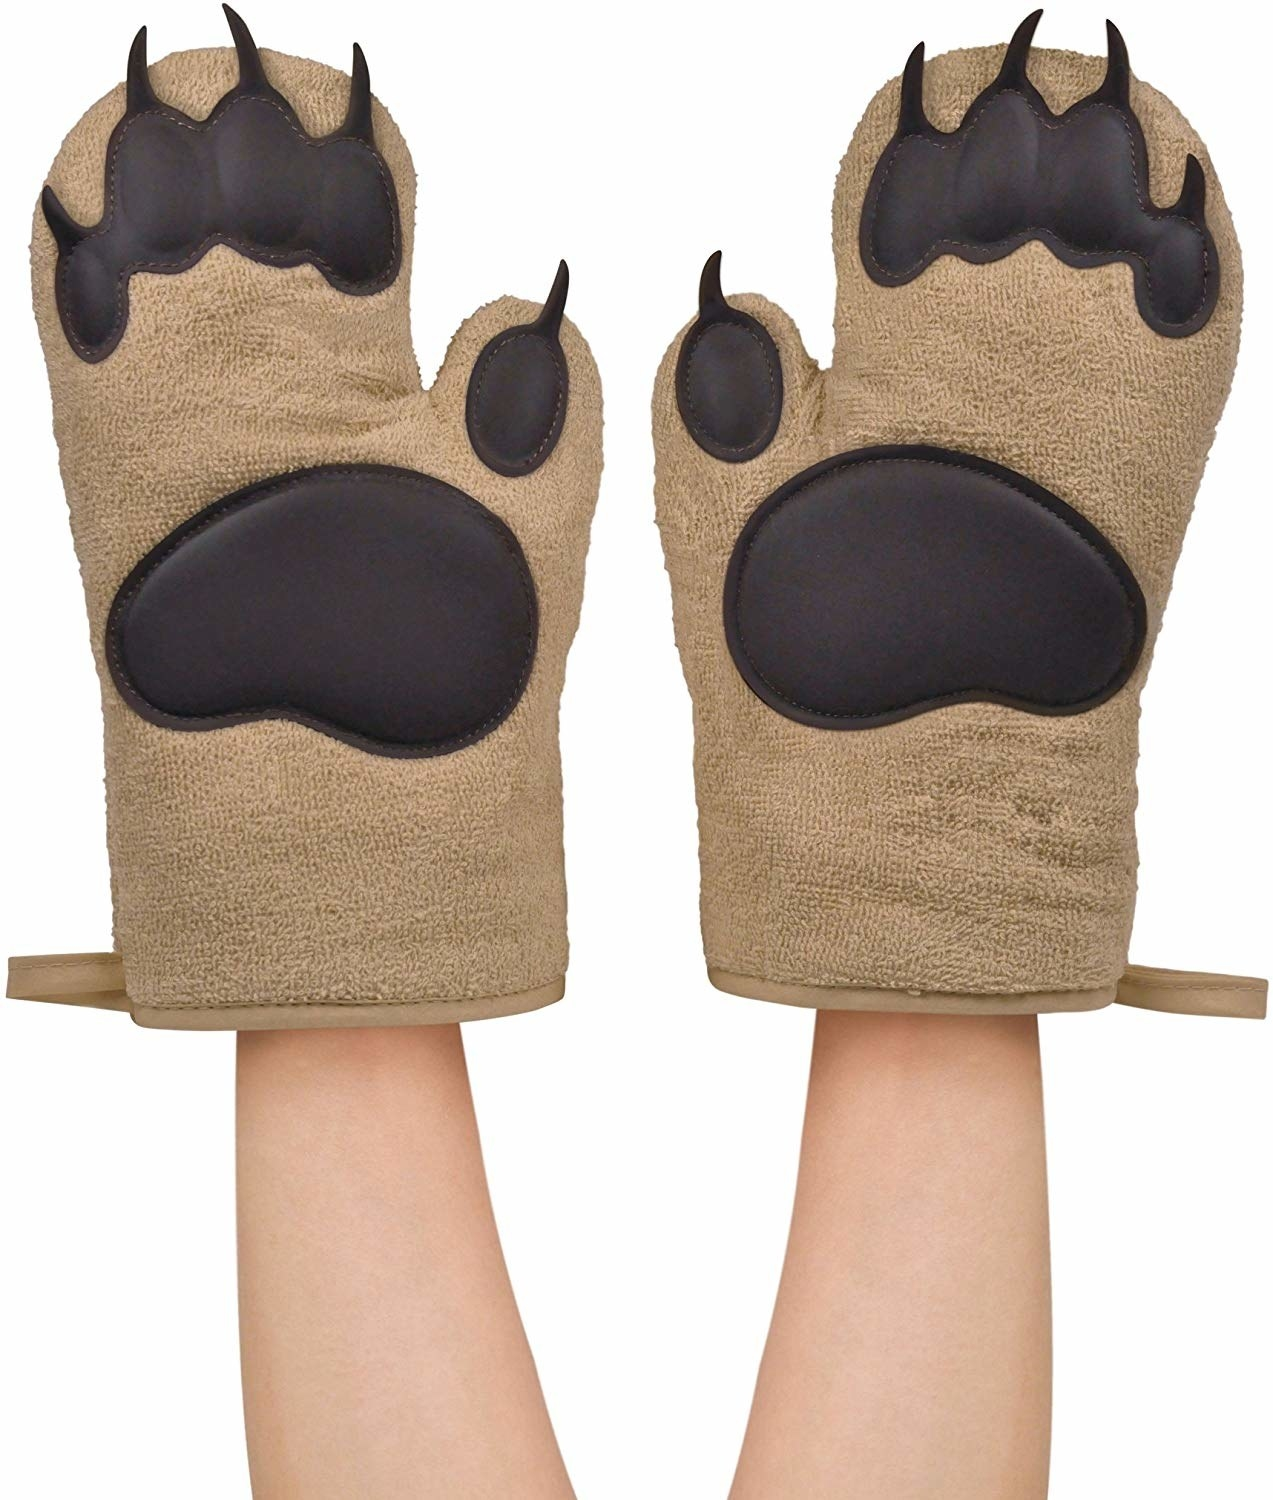 a model wearing two oven mitts that look like bear paws